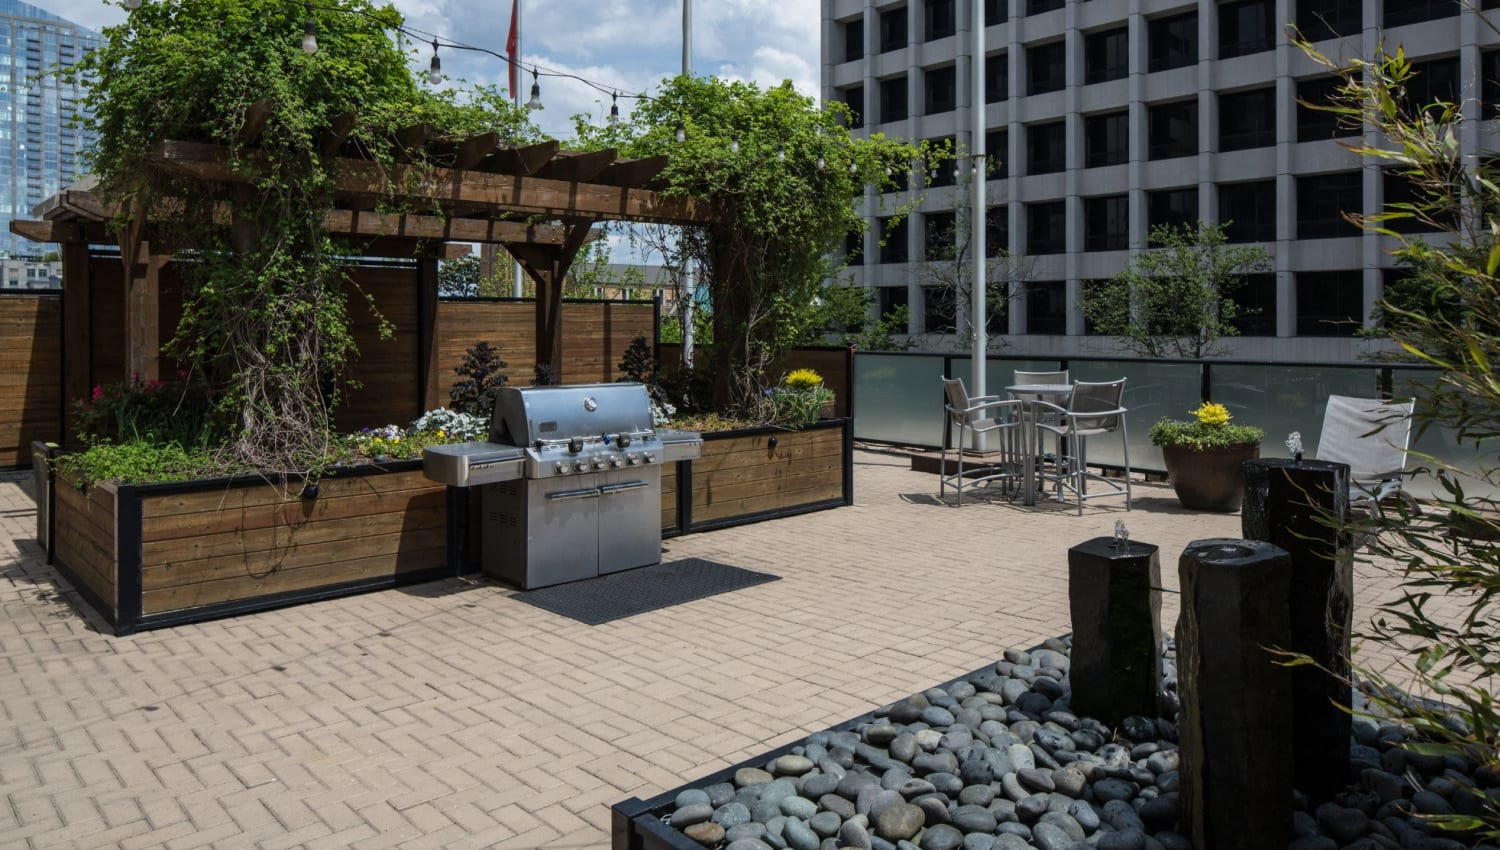 Grill and chill space at Solace on Peachtree in Atlanta, Georgia